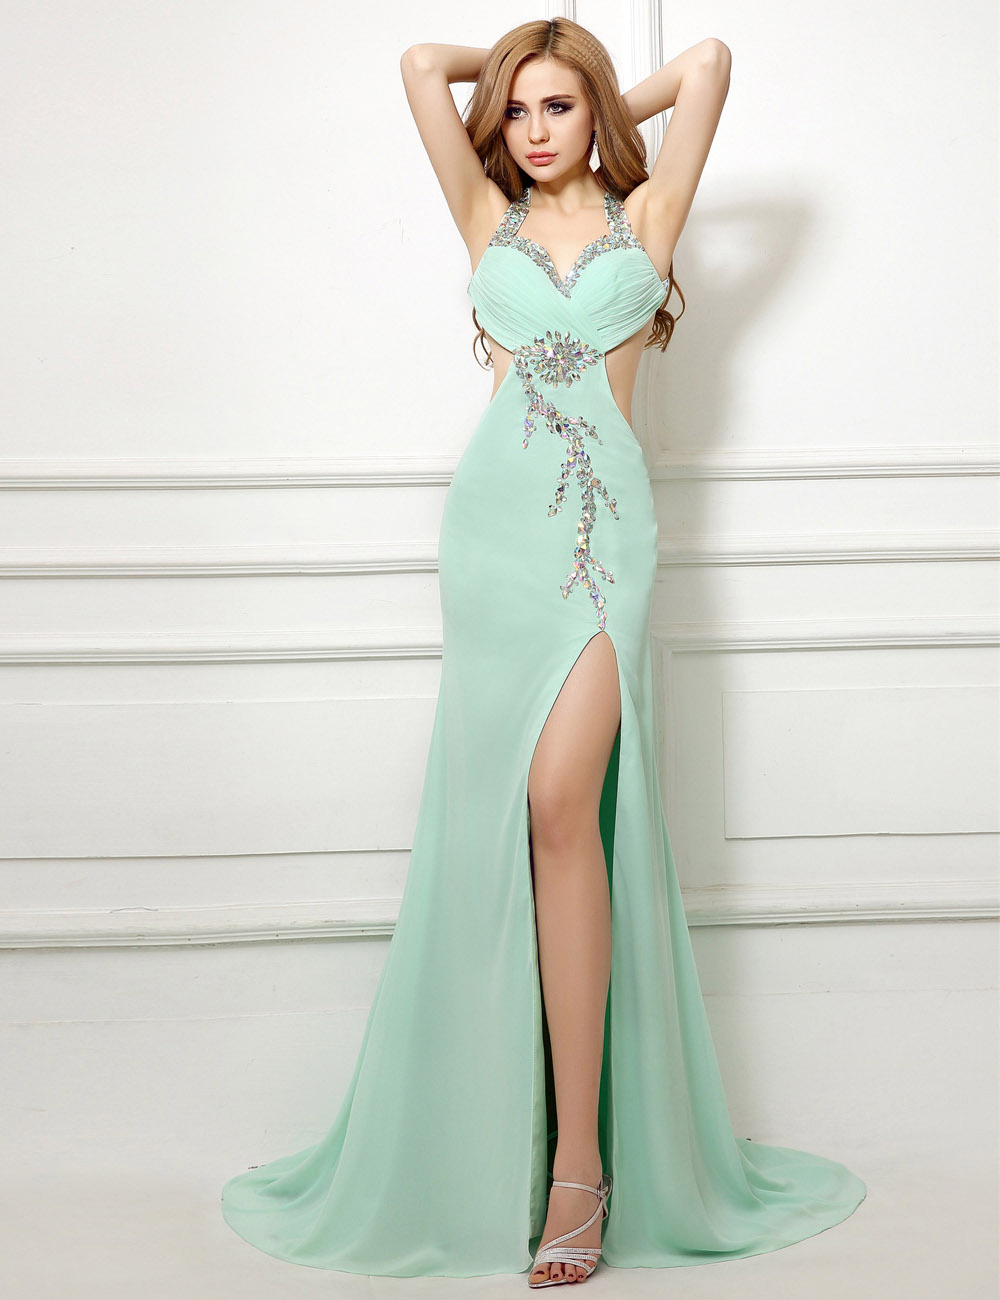 Sheath/Column Halter Floor-length Chiffon Prom Dress